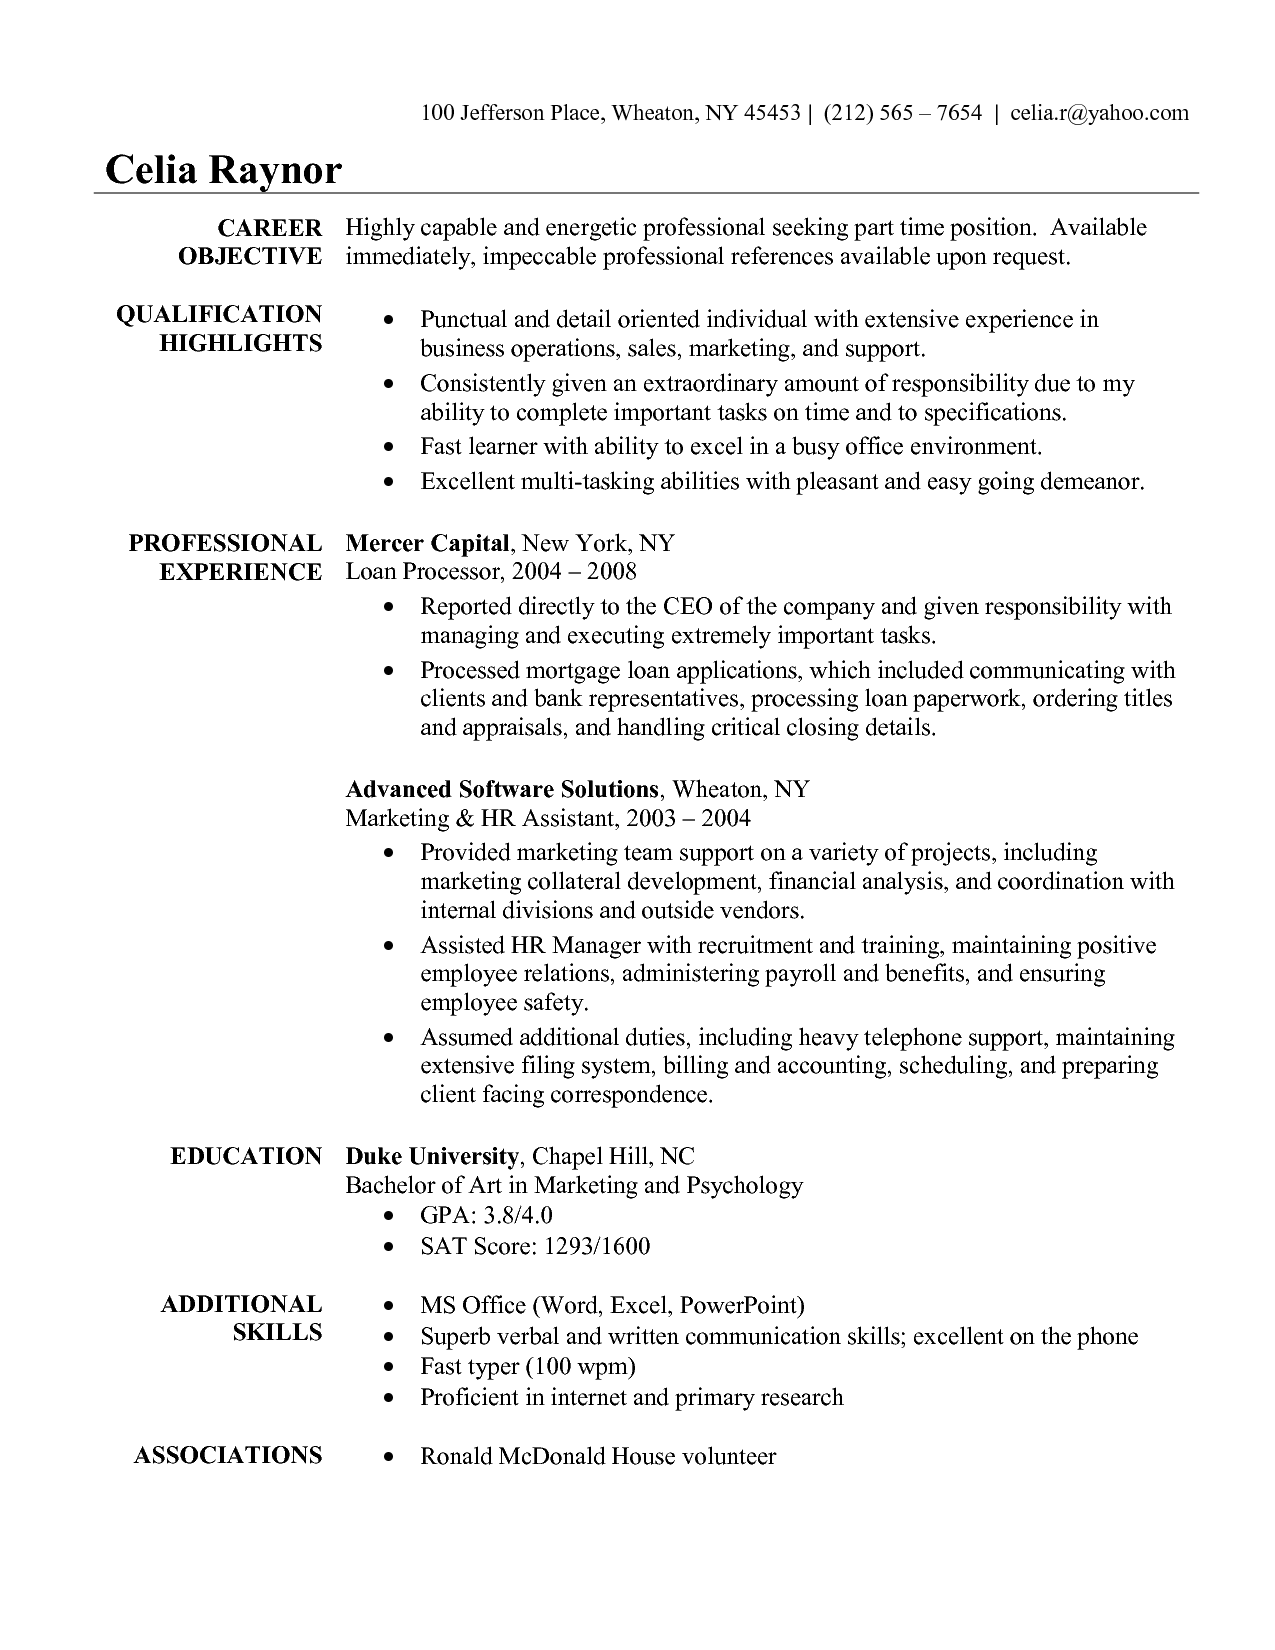 Resume Objective For Administrative Assistant Resume Sample For Administrative Assistant Resume Samples For